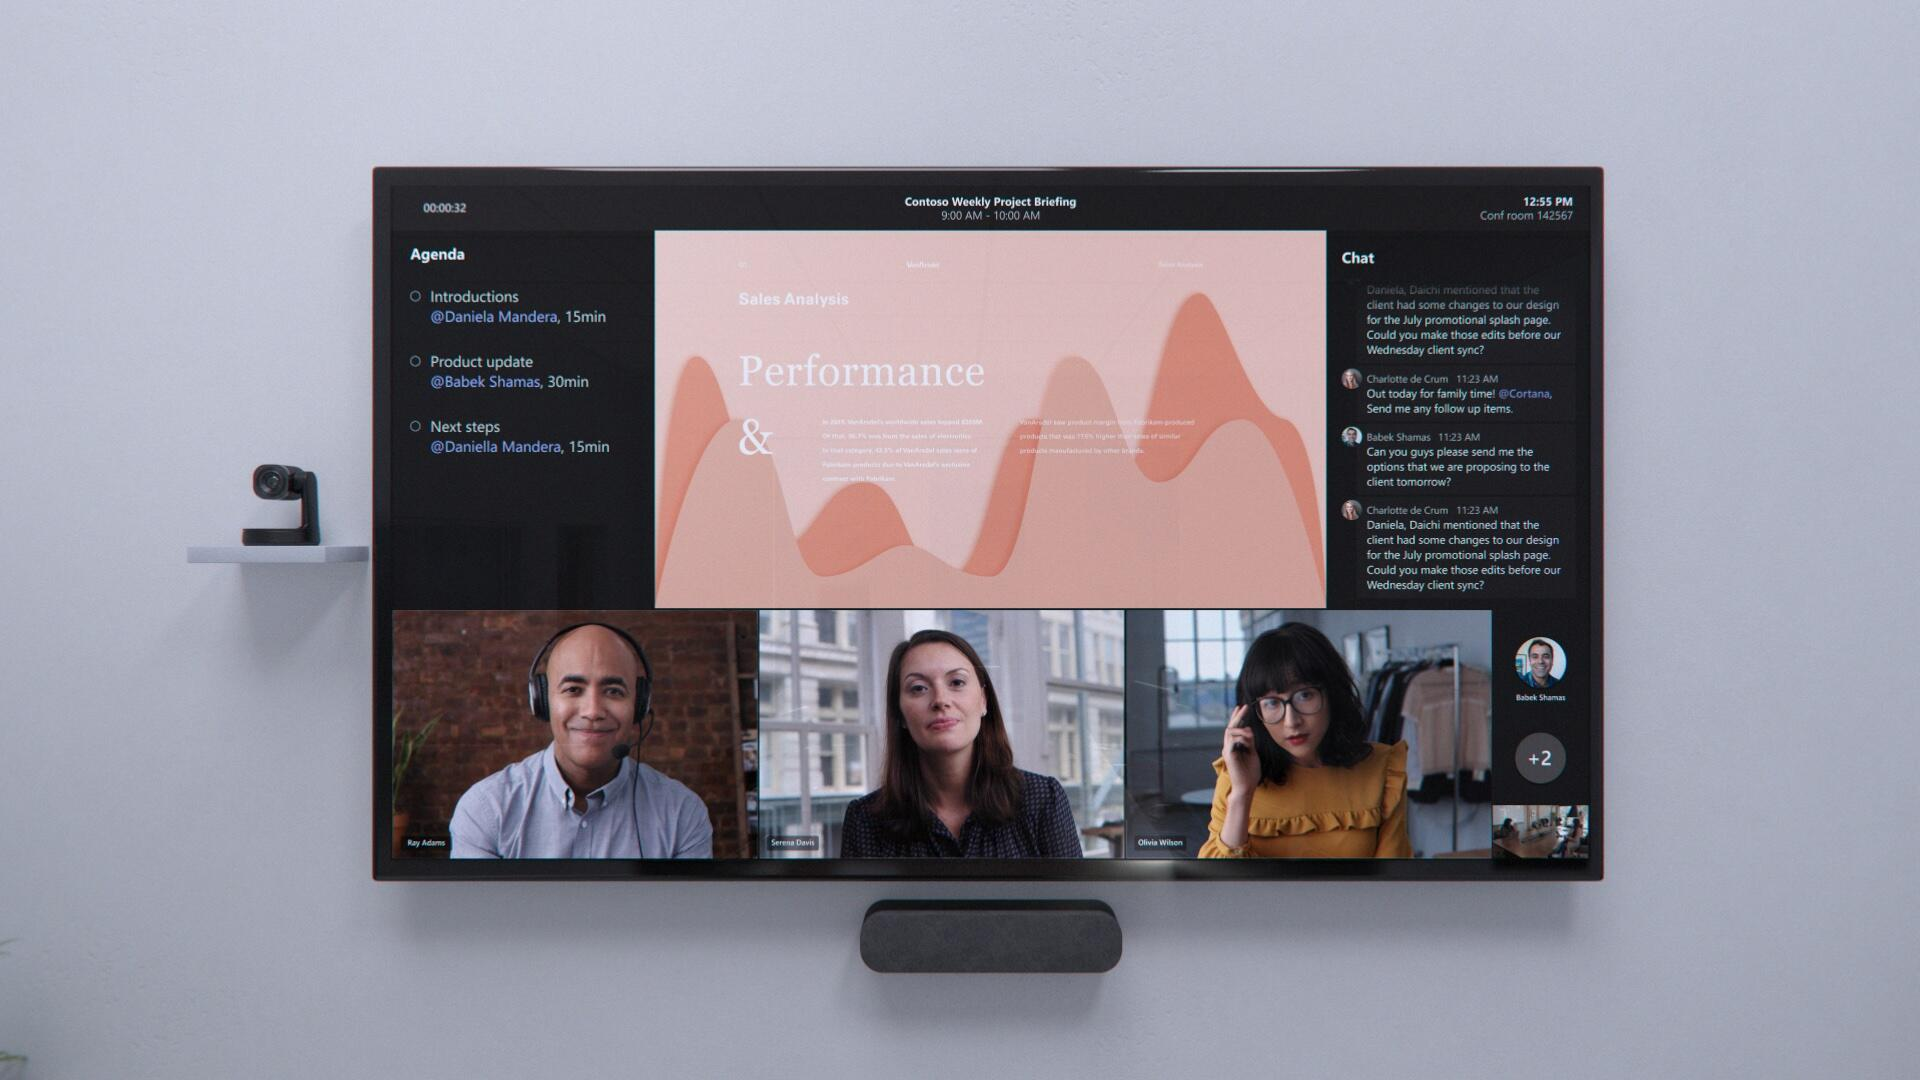 Microsoft Teams adds new features for easier meetings, whether you're in the office or remote